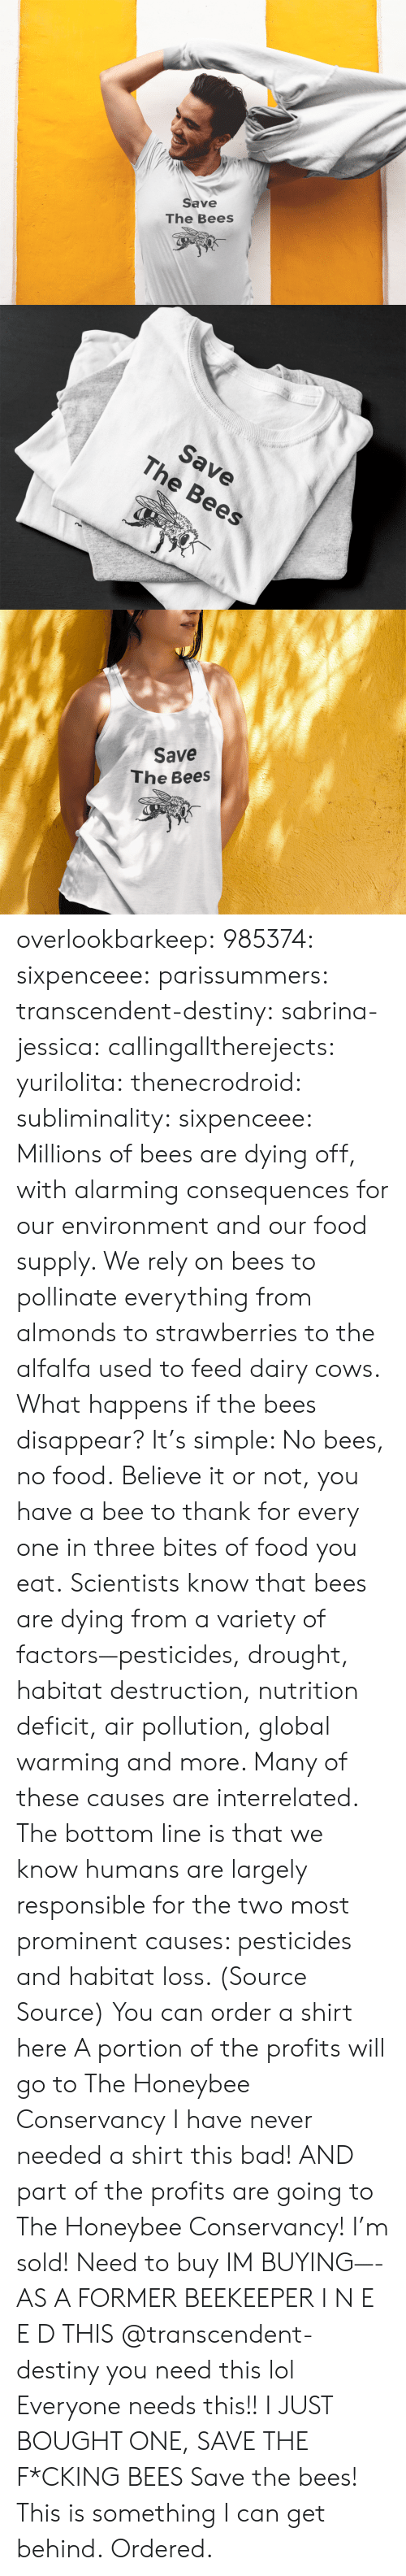 Globalism: Save  The Bees   Save  The Bees   Save  The Bees overlookbarkeep:  985374: sixpenceee:  parissummers:  transcendent-destiny:  sabrina-jessica:   callingalltherejects:  yurilolita:  thenecrodroid:  subliminality:   sixpenceee:   Millions of bees are dying off, with alarming consequences for our environment and our food supply. We rely on bees to pollinate everything from almonds to strawberries to the alfalfa used to feed dairy cows. What happens if the bees disappear? It's simple: No bees, no food. Believe it or not, you have a bee to thank for every one in three bites of food you eat. Scientists know that bees are dying from a variety of factors—pesticides, drought, habitat destruction, nutrition deficit, air pollution, global warming and more. Many of these causes are interrelated. The bottom line is that we know humans are largely responsible for the two most prominent causes: pesticides and habitat loss. (Source  Source) You can order a shirt here A portion of the profits will go to The Honeybee Conservancy   I have never needed a shirt this bad! AND part of the profits are going to The Honeybee Conservancy! I'm sold!   Need to buy   IM BUYING—-   AS A FORMER BEEKEEPER I N E E D THIS   @transcendent-destiny you need this lol  Everyone needs this!!   I JUST BOUGHT ONE, SAVE THE F*CKING BEES  Save the bees!   This is something I can get behind.   Ordered.